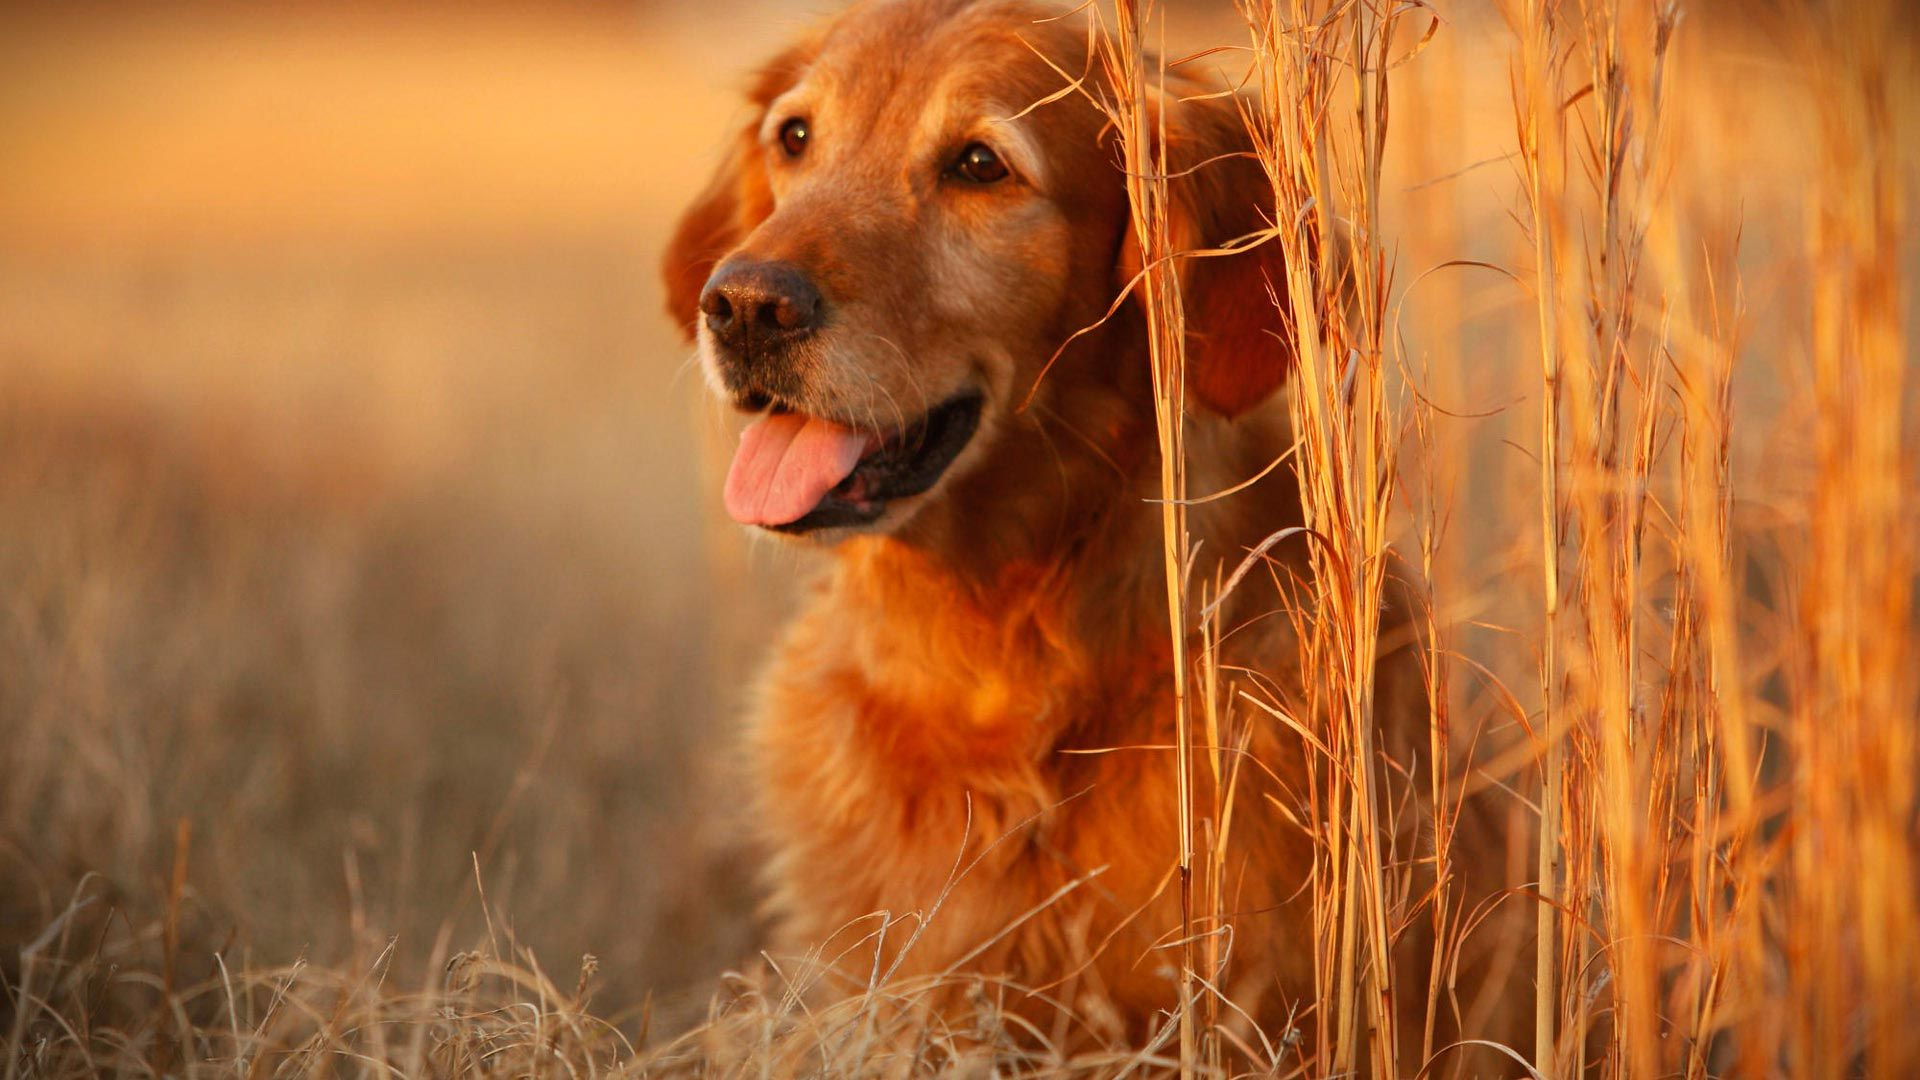 Wallpapers For Desktop Background Full Screen Hd Free Download Hd Desktop Wallpapers 1080p Dog Wallpaper Cute Dog Pictures Dog Images Hd